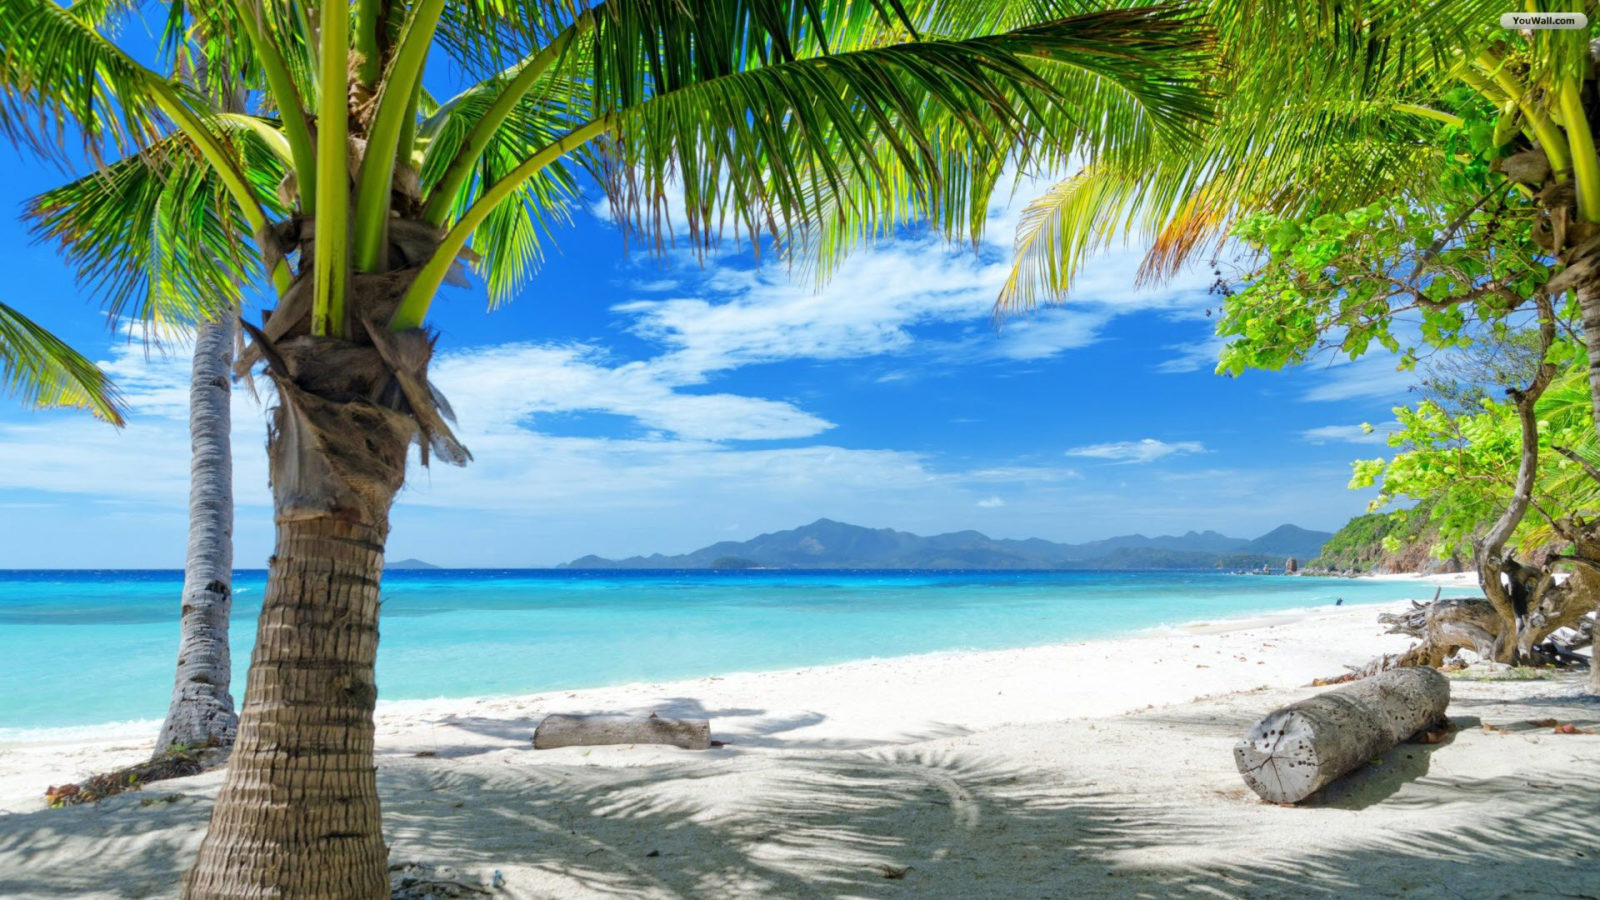 Hd Tropical Island Beach Paradise Wallpapers And Backgrounds: 129 Beach Wallpaper Examples To Put On Your Desktop Background